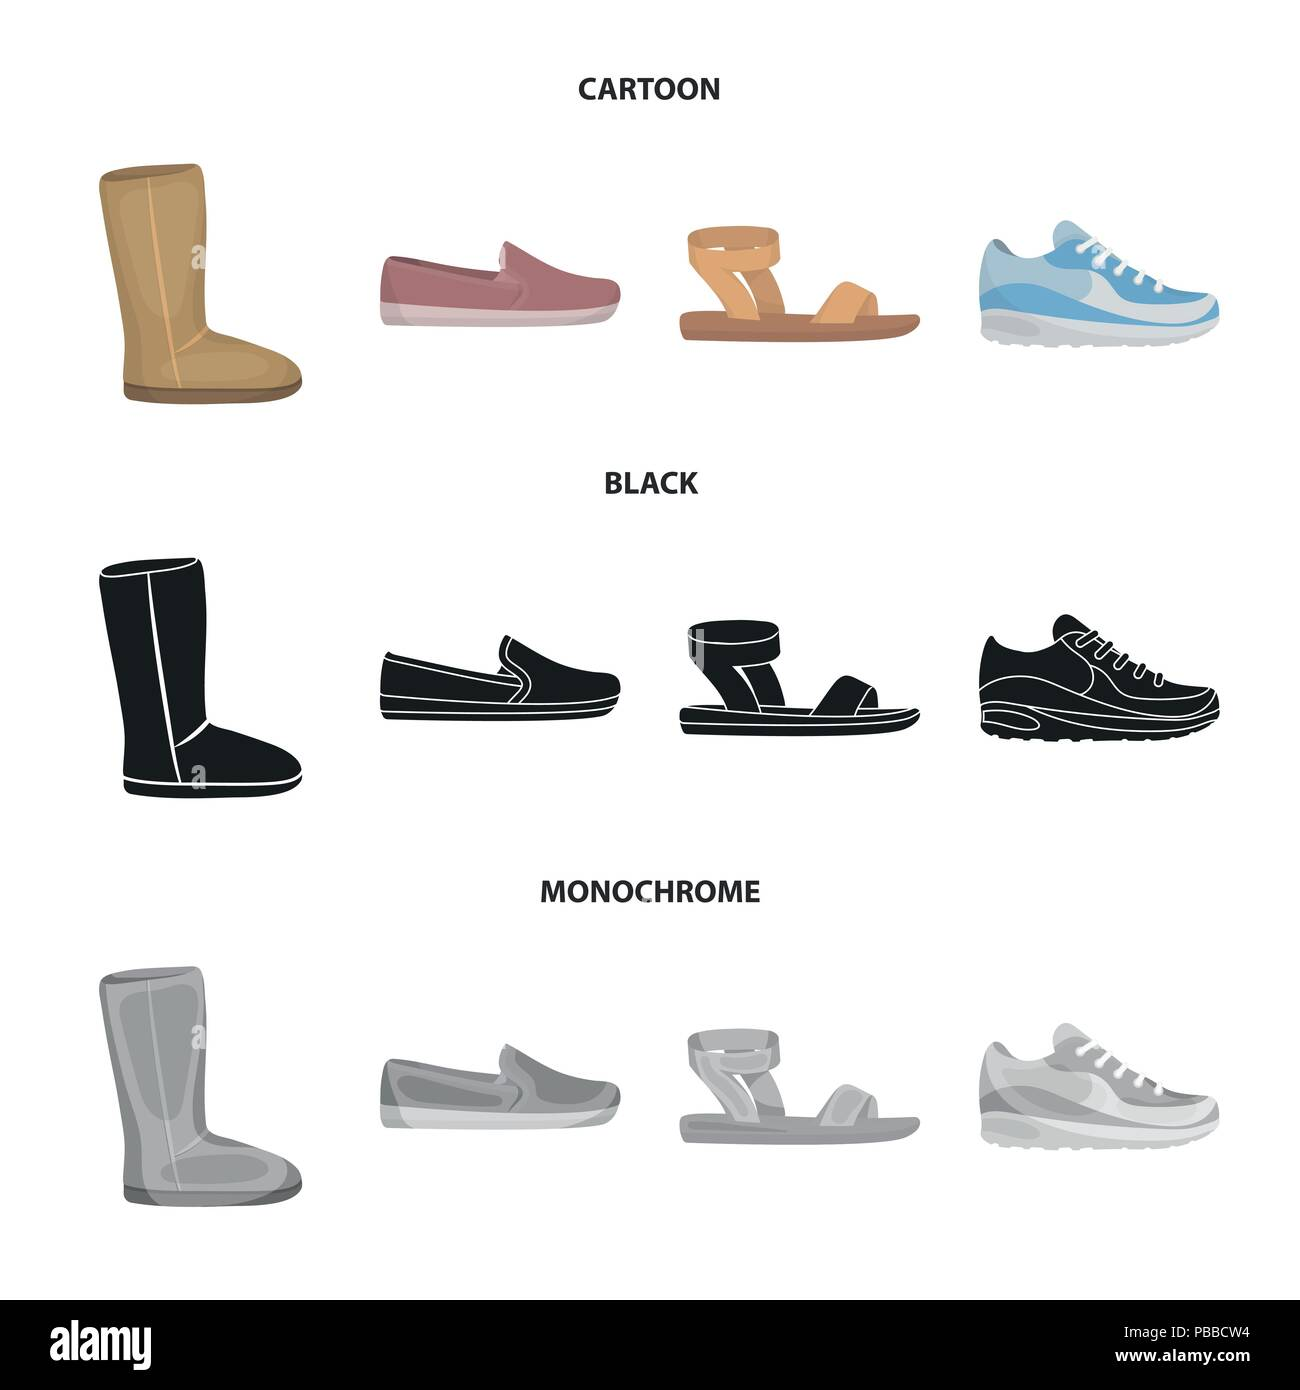 Beige ugg boots with fur, brown loafers with a white sole, sandals with a fastener, white and blue sneakers. Shoes set collection icons in cartoon,bla